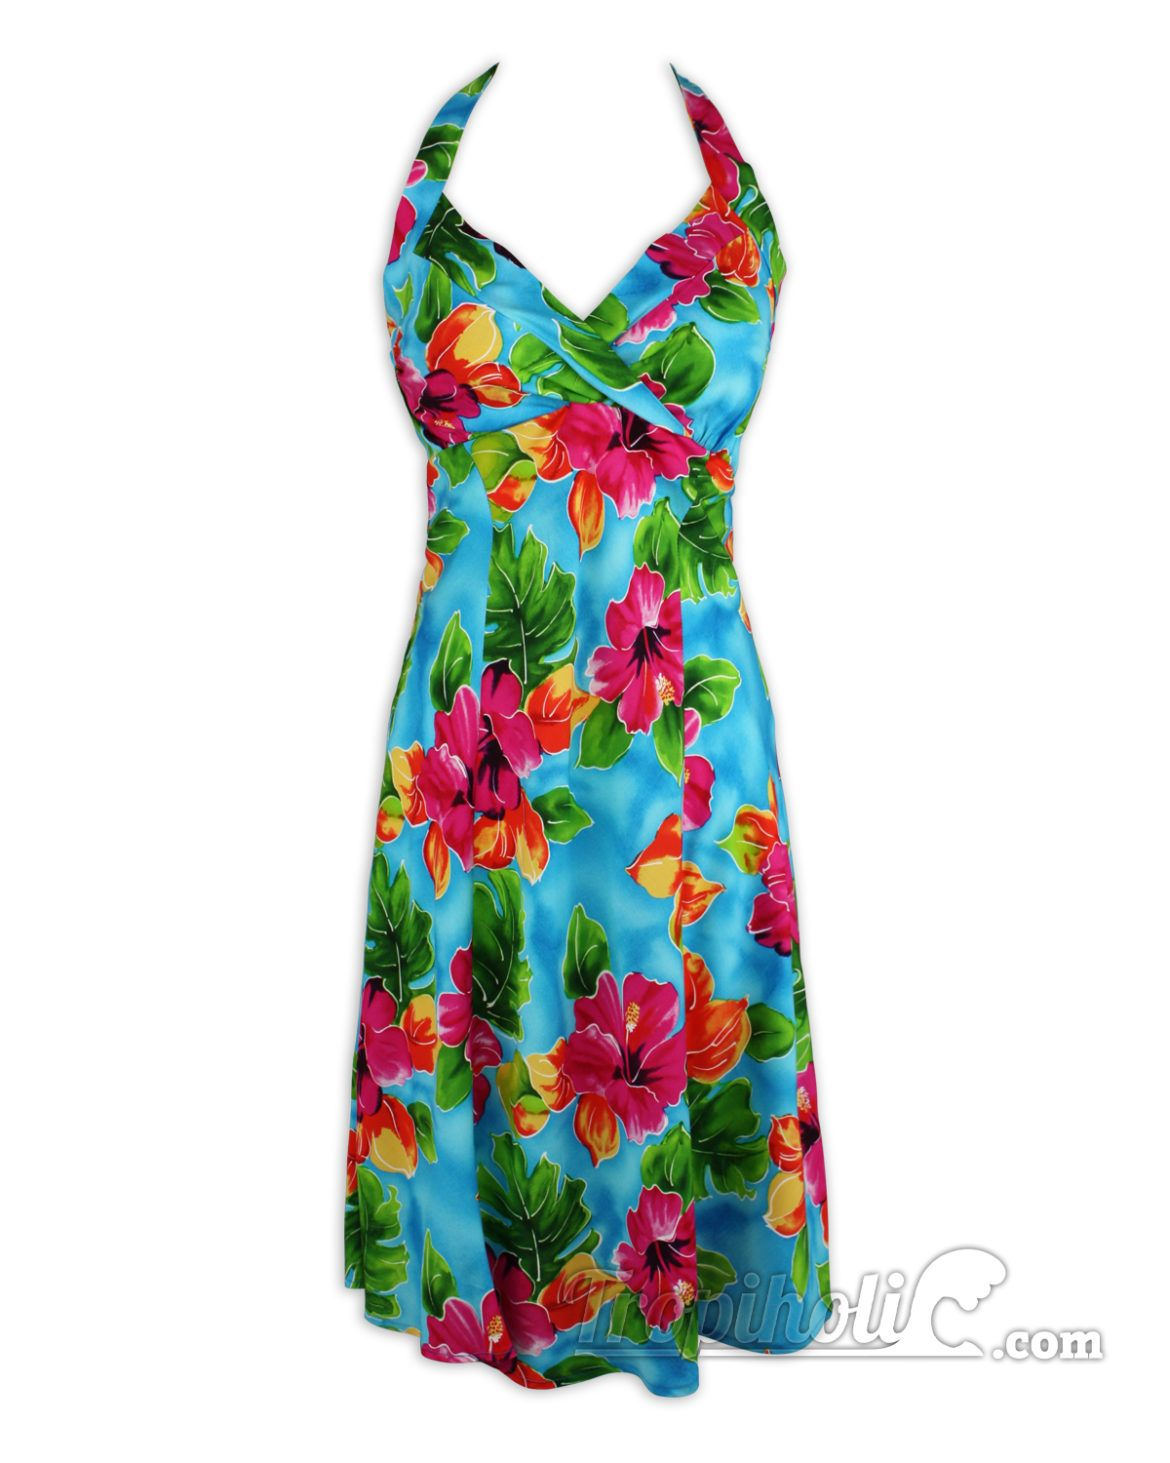 98a76ea8e2d Hawaiian Sundress - Short Halter - Two Palms-Hibiscus Watercolor -Turquoise  - Love the colors